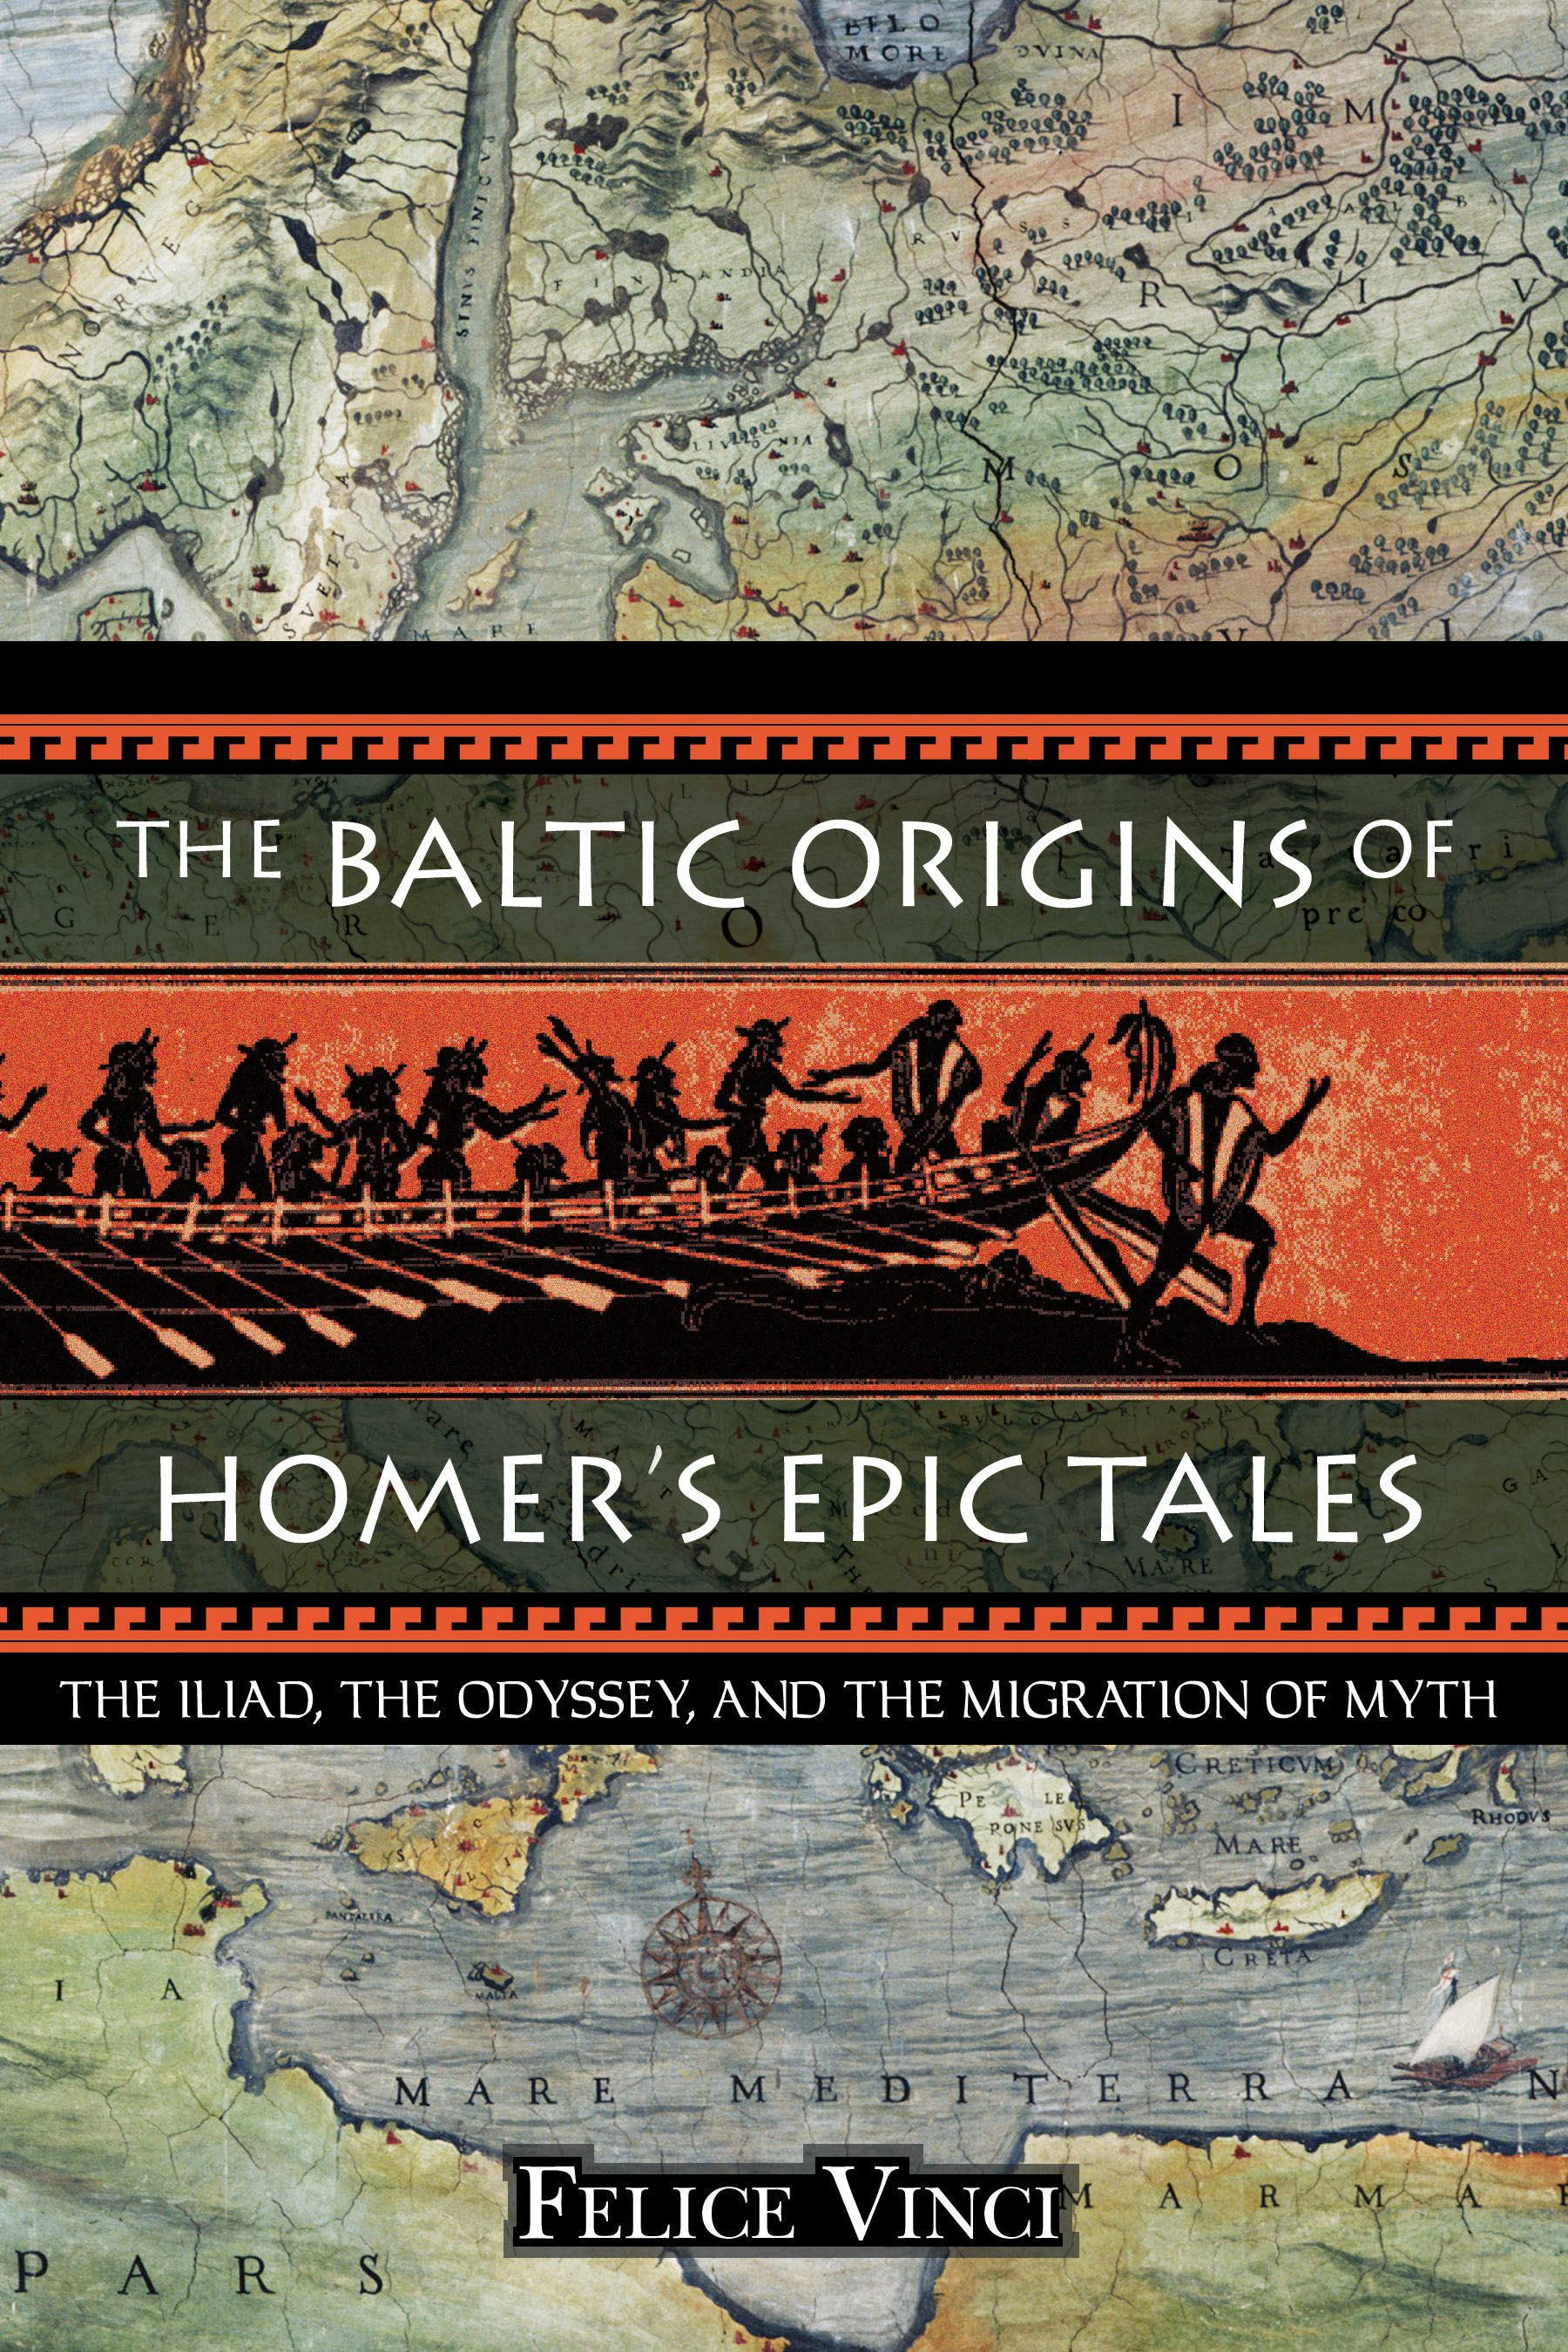 The-baltic-origins-of-homers-epic-tales-9781594770524_hr